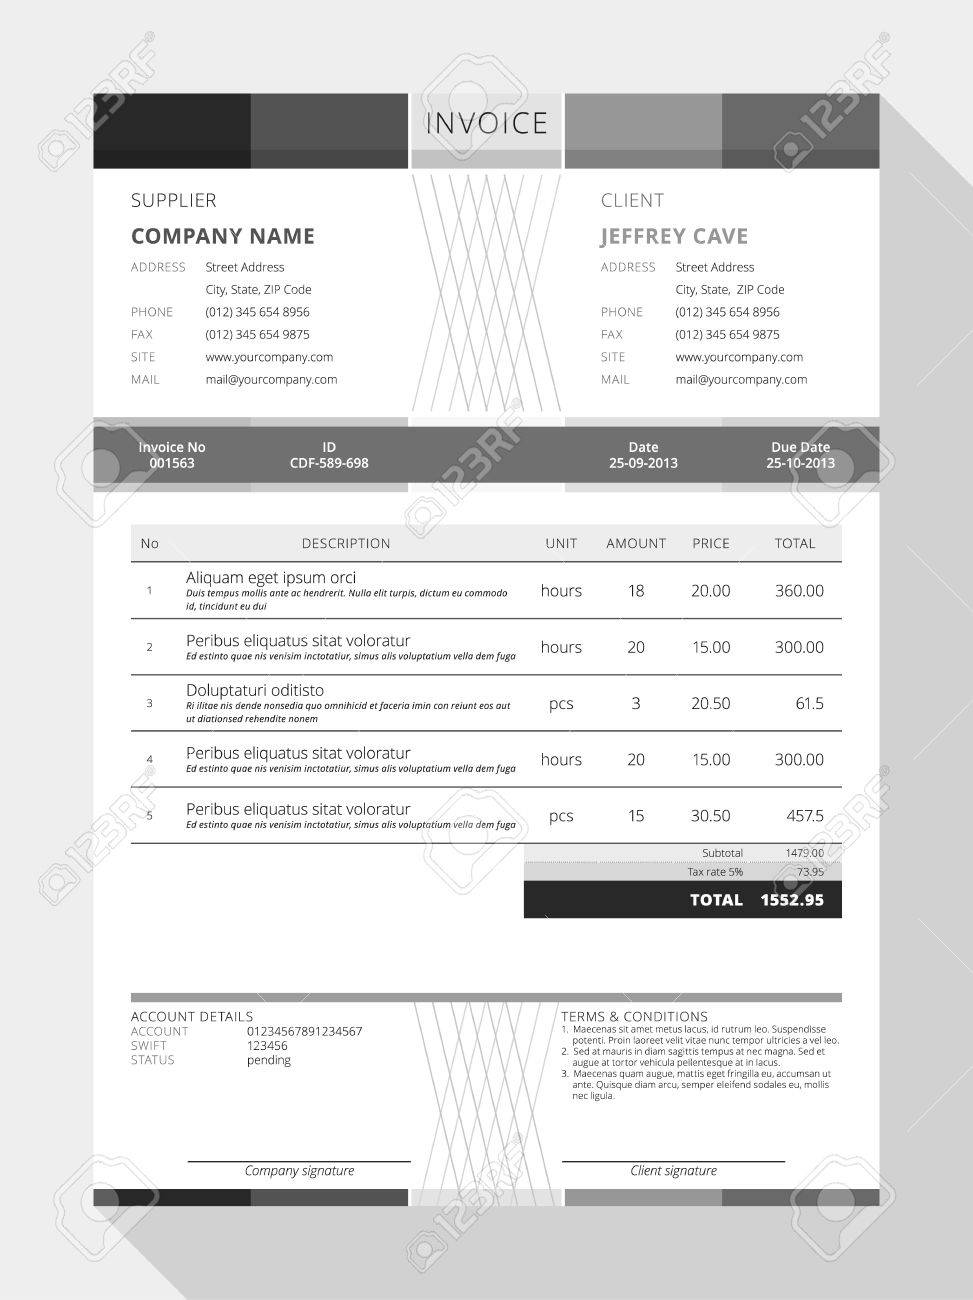 Hucareus  Marvelous Design An Invoice  Professional Graphic Design Invoice  With Magnificent Vector Customizable Invoice Form Template Design Vector   Design An Invoice With Nice Evernote Receipts Also Make A Fake Receipt In Addition Usps Certified Mail Receipt And Cab Receipt As Well As Irs Audit Fake Receipts Additionally Walmart Exchange Policy Without Receipt From Happytomco With Hucareus  Magnificent Design An Invoice  Professional Graphic Design Invoice  With Nice Vector Customizable Invoice Form Template Design Vector   Design An Invoice And Marvelous Evernote Receipts Also Make A Fake Receipt In Addition Usps Certified Mail Receipt From Happytomco